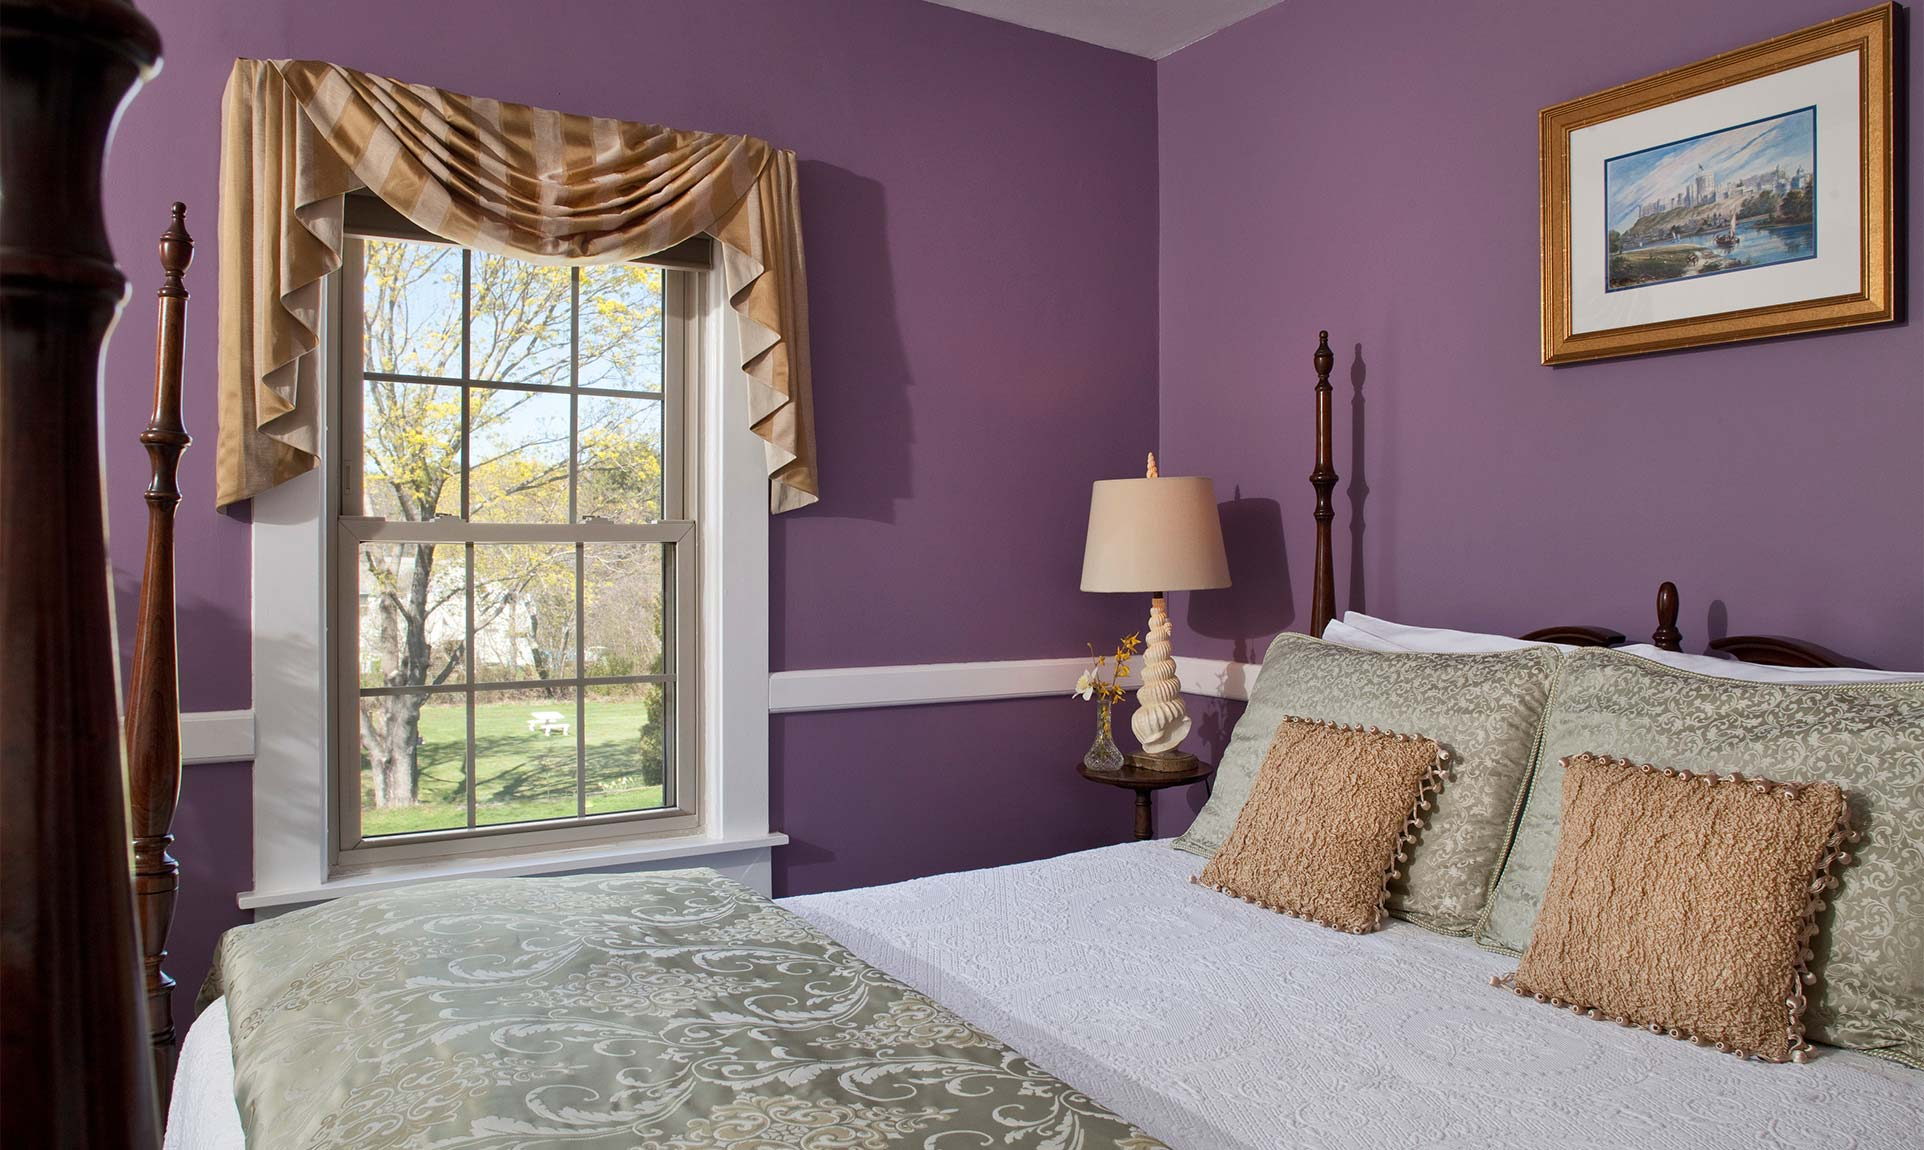 Queen bed and a window overlooking a yard